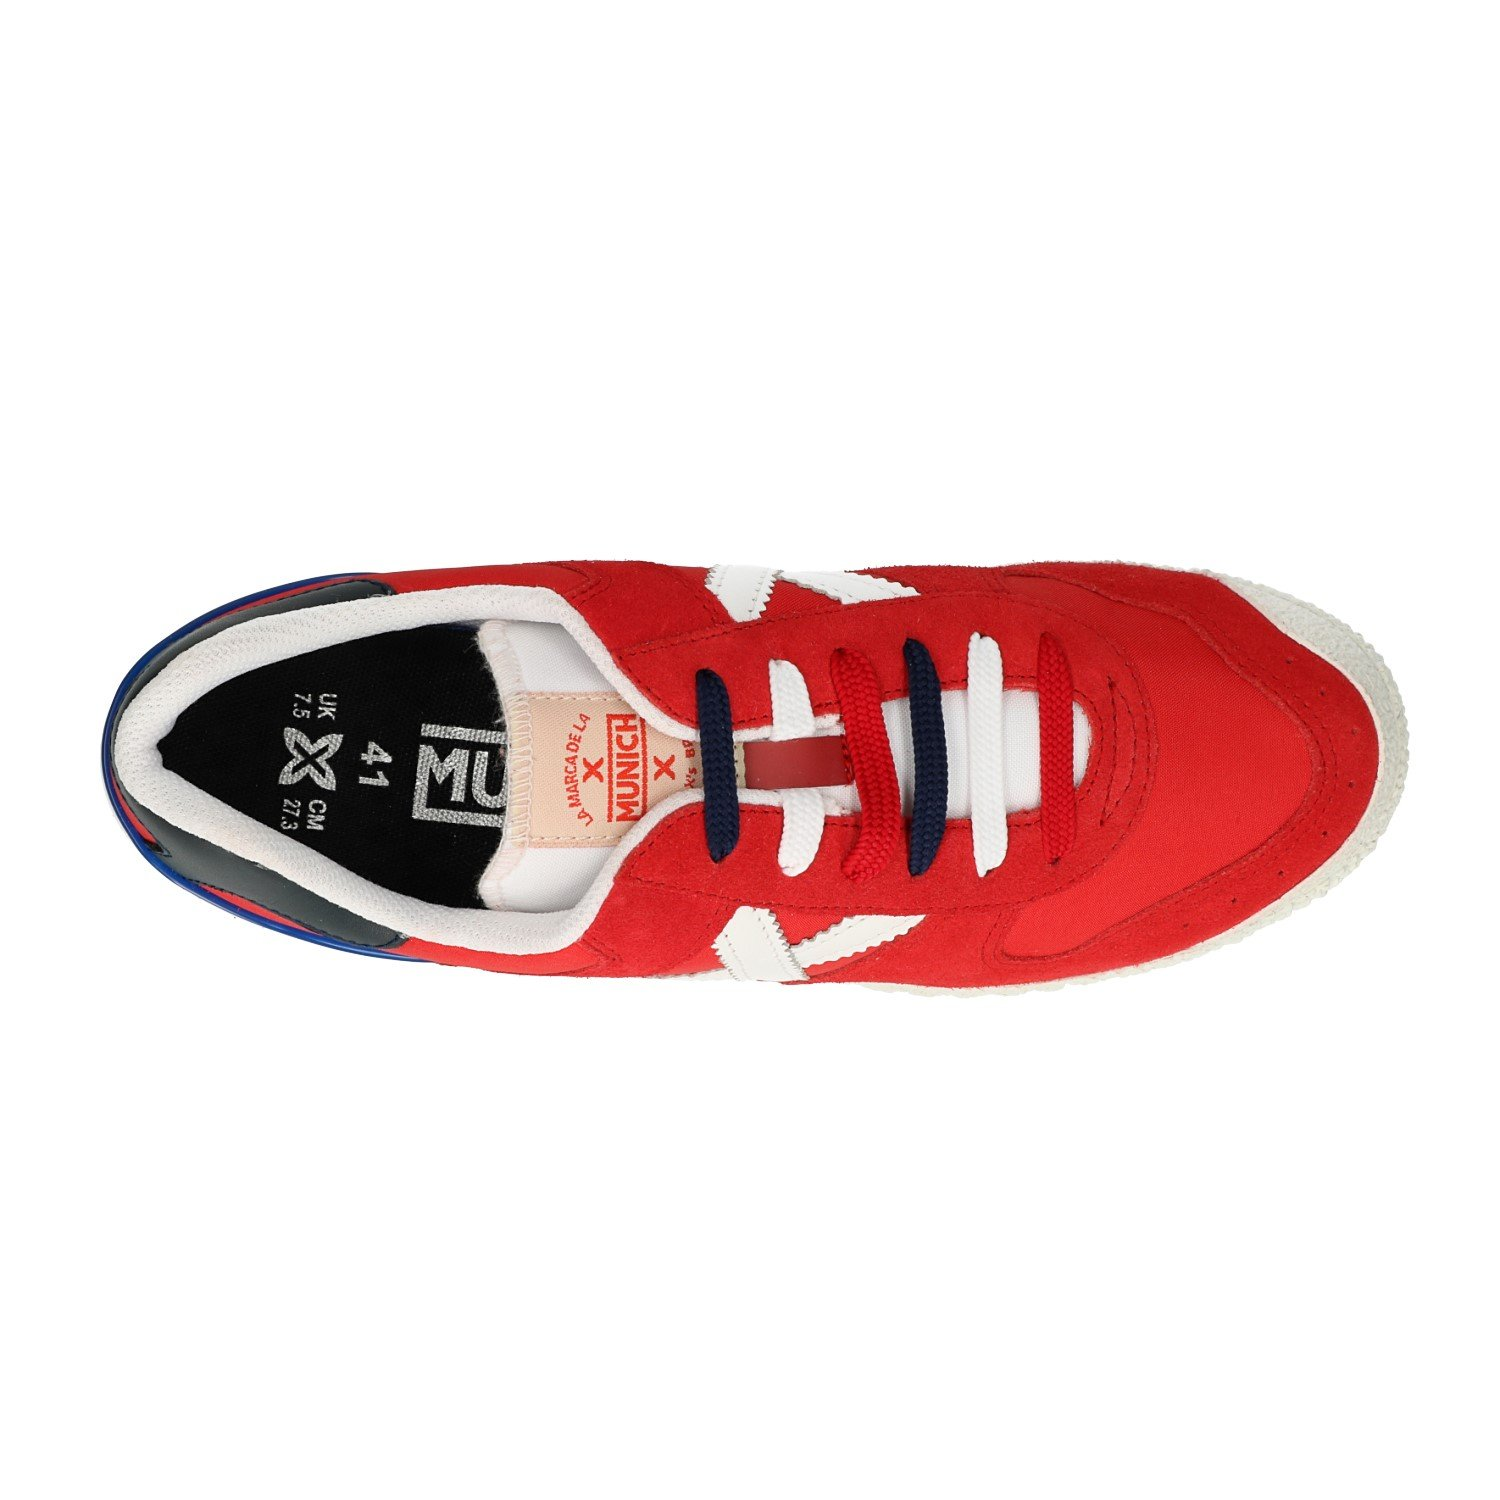 Munich Red Sneakers Goal 1376 (44 White): Amazon.co.uk